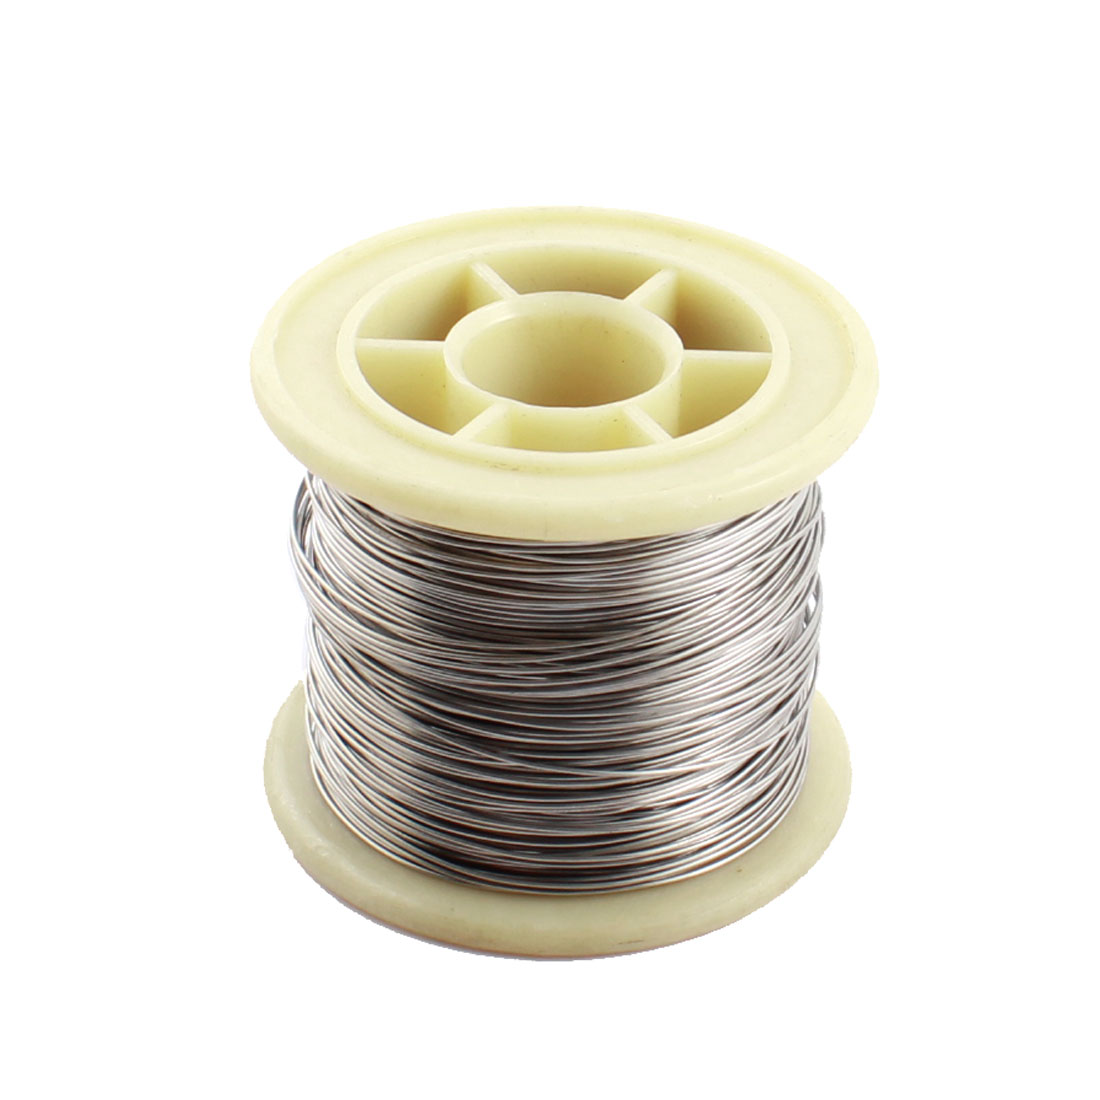 30Meter 100ft 0.55mm AWG23 Gauge Cable Nickel Copper Alloy Resistance Heating Coils Resistor Wire